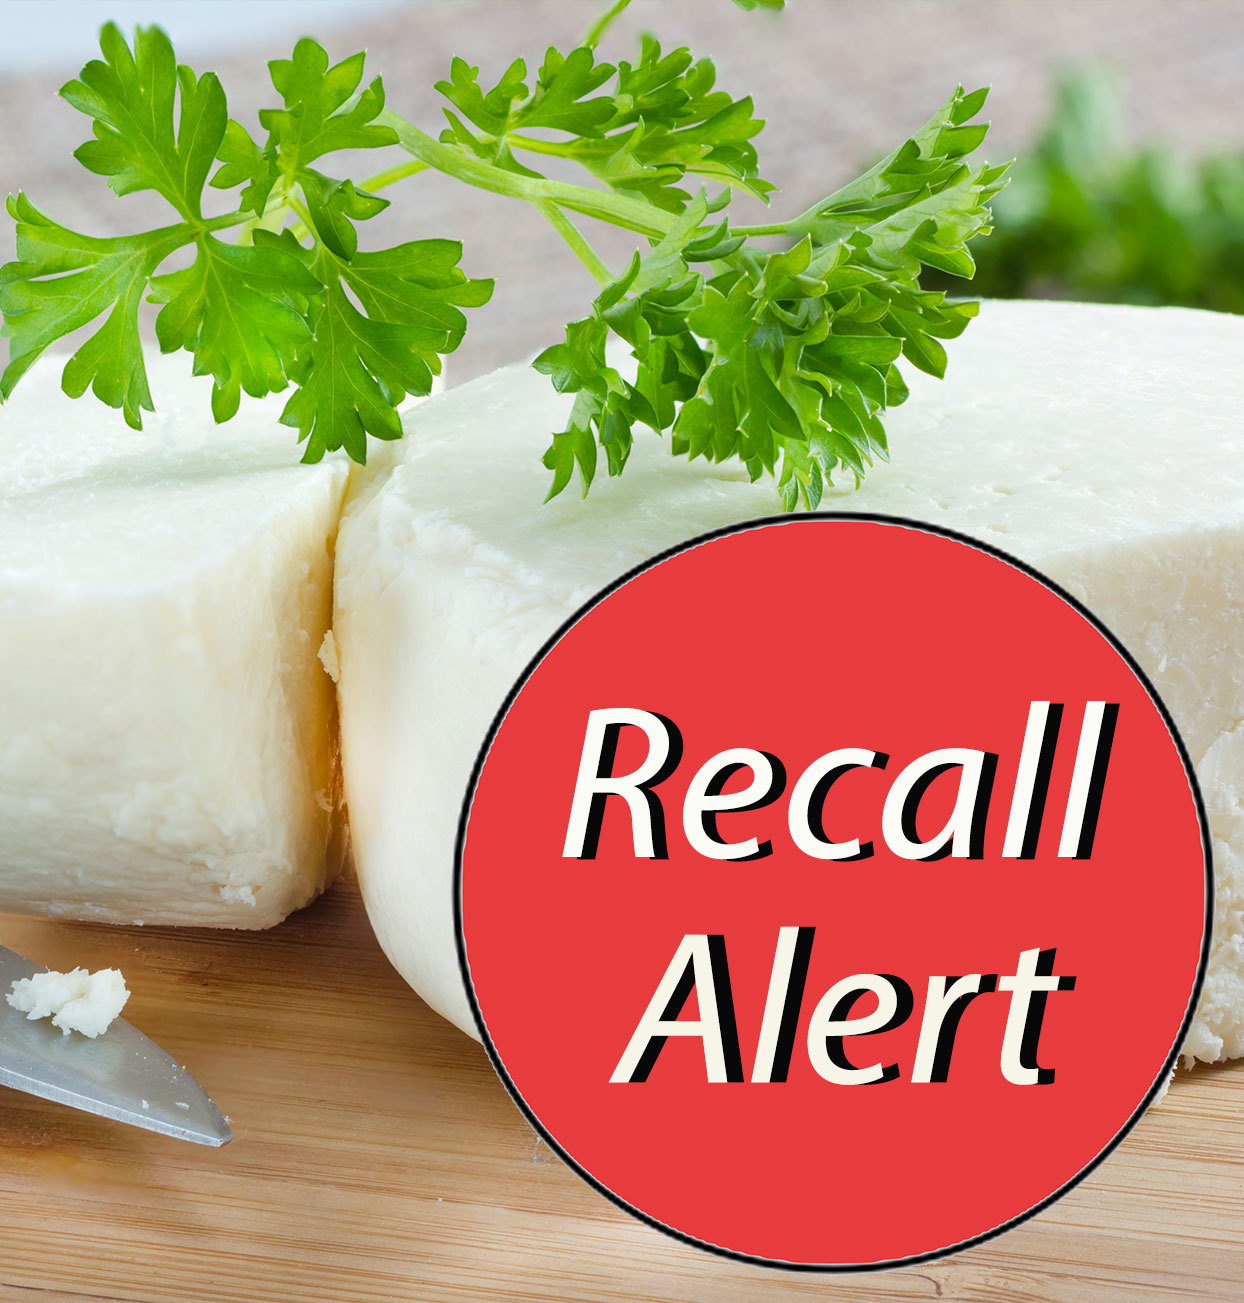 Cotija Cheese Recalled in 5 States for Possible E. Coli Contamination